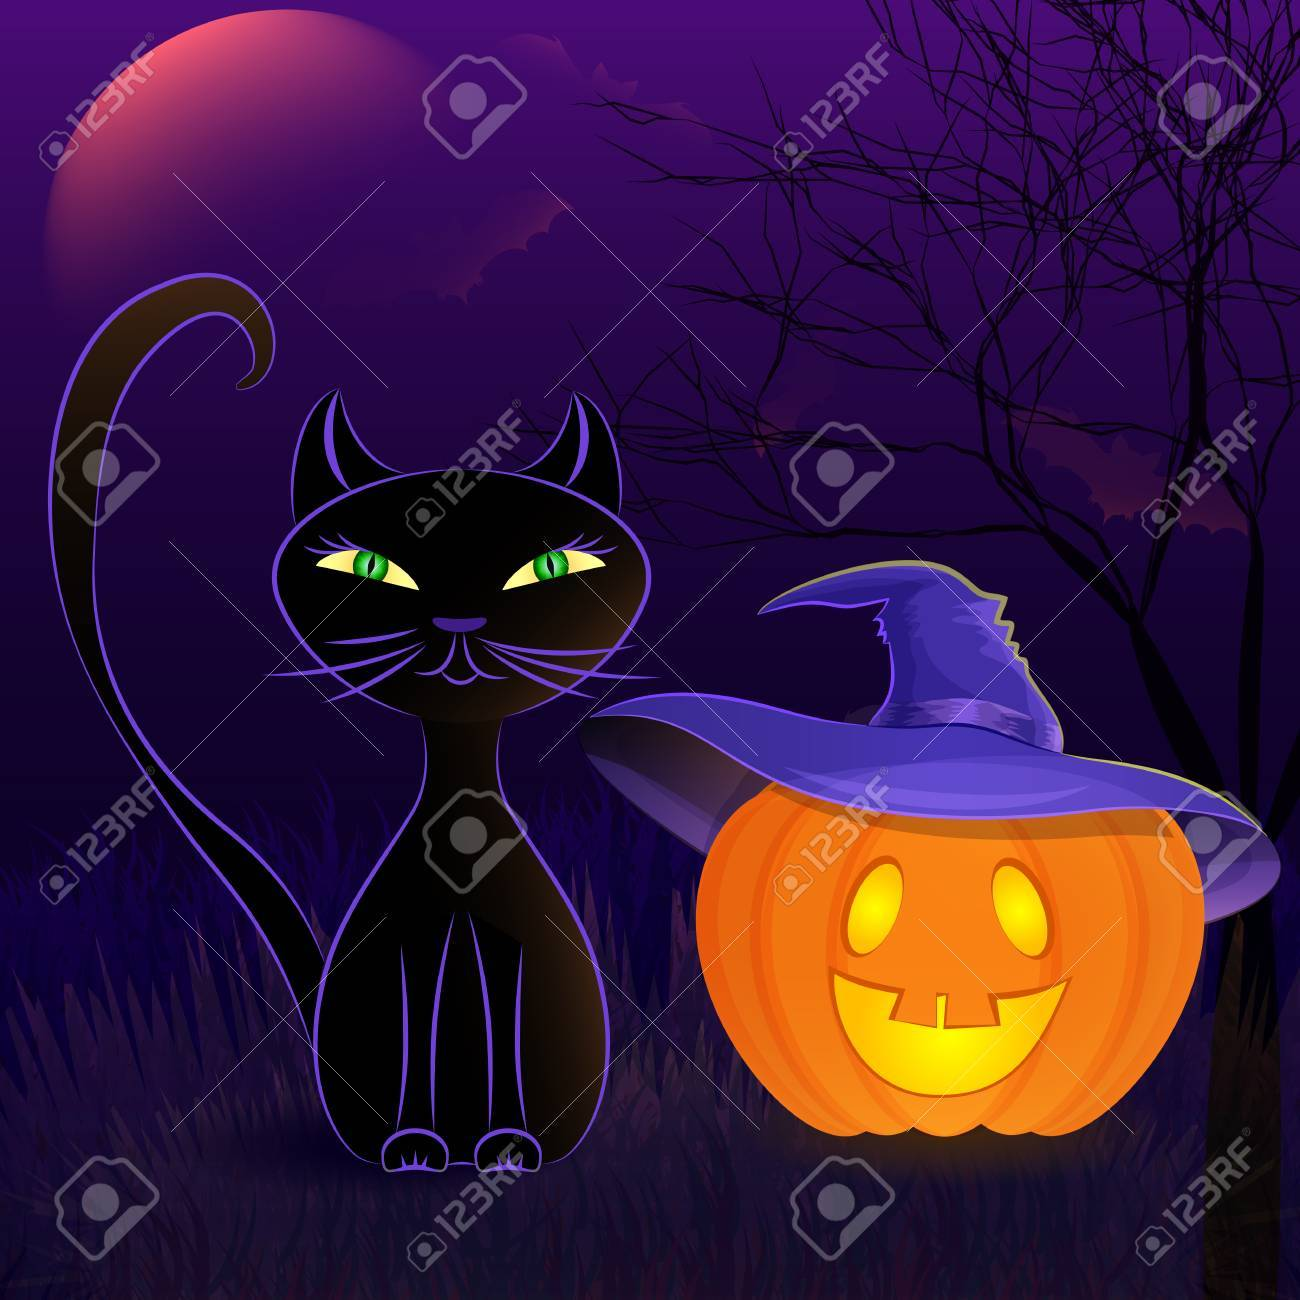 Halloween Night Vector Poster With Black Cat Jack O Lantern Royalty Free Cliparts Vectors And Stock Illustration Image 44896521